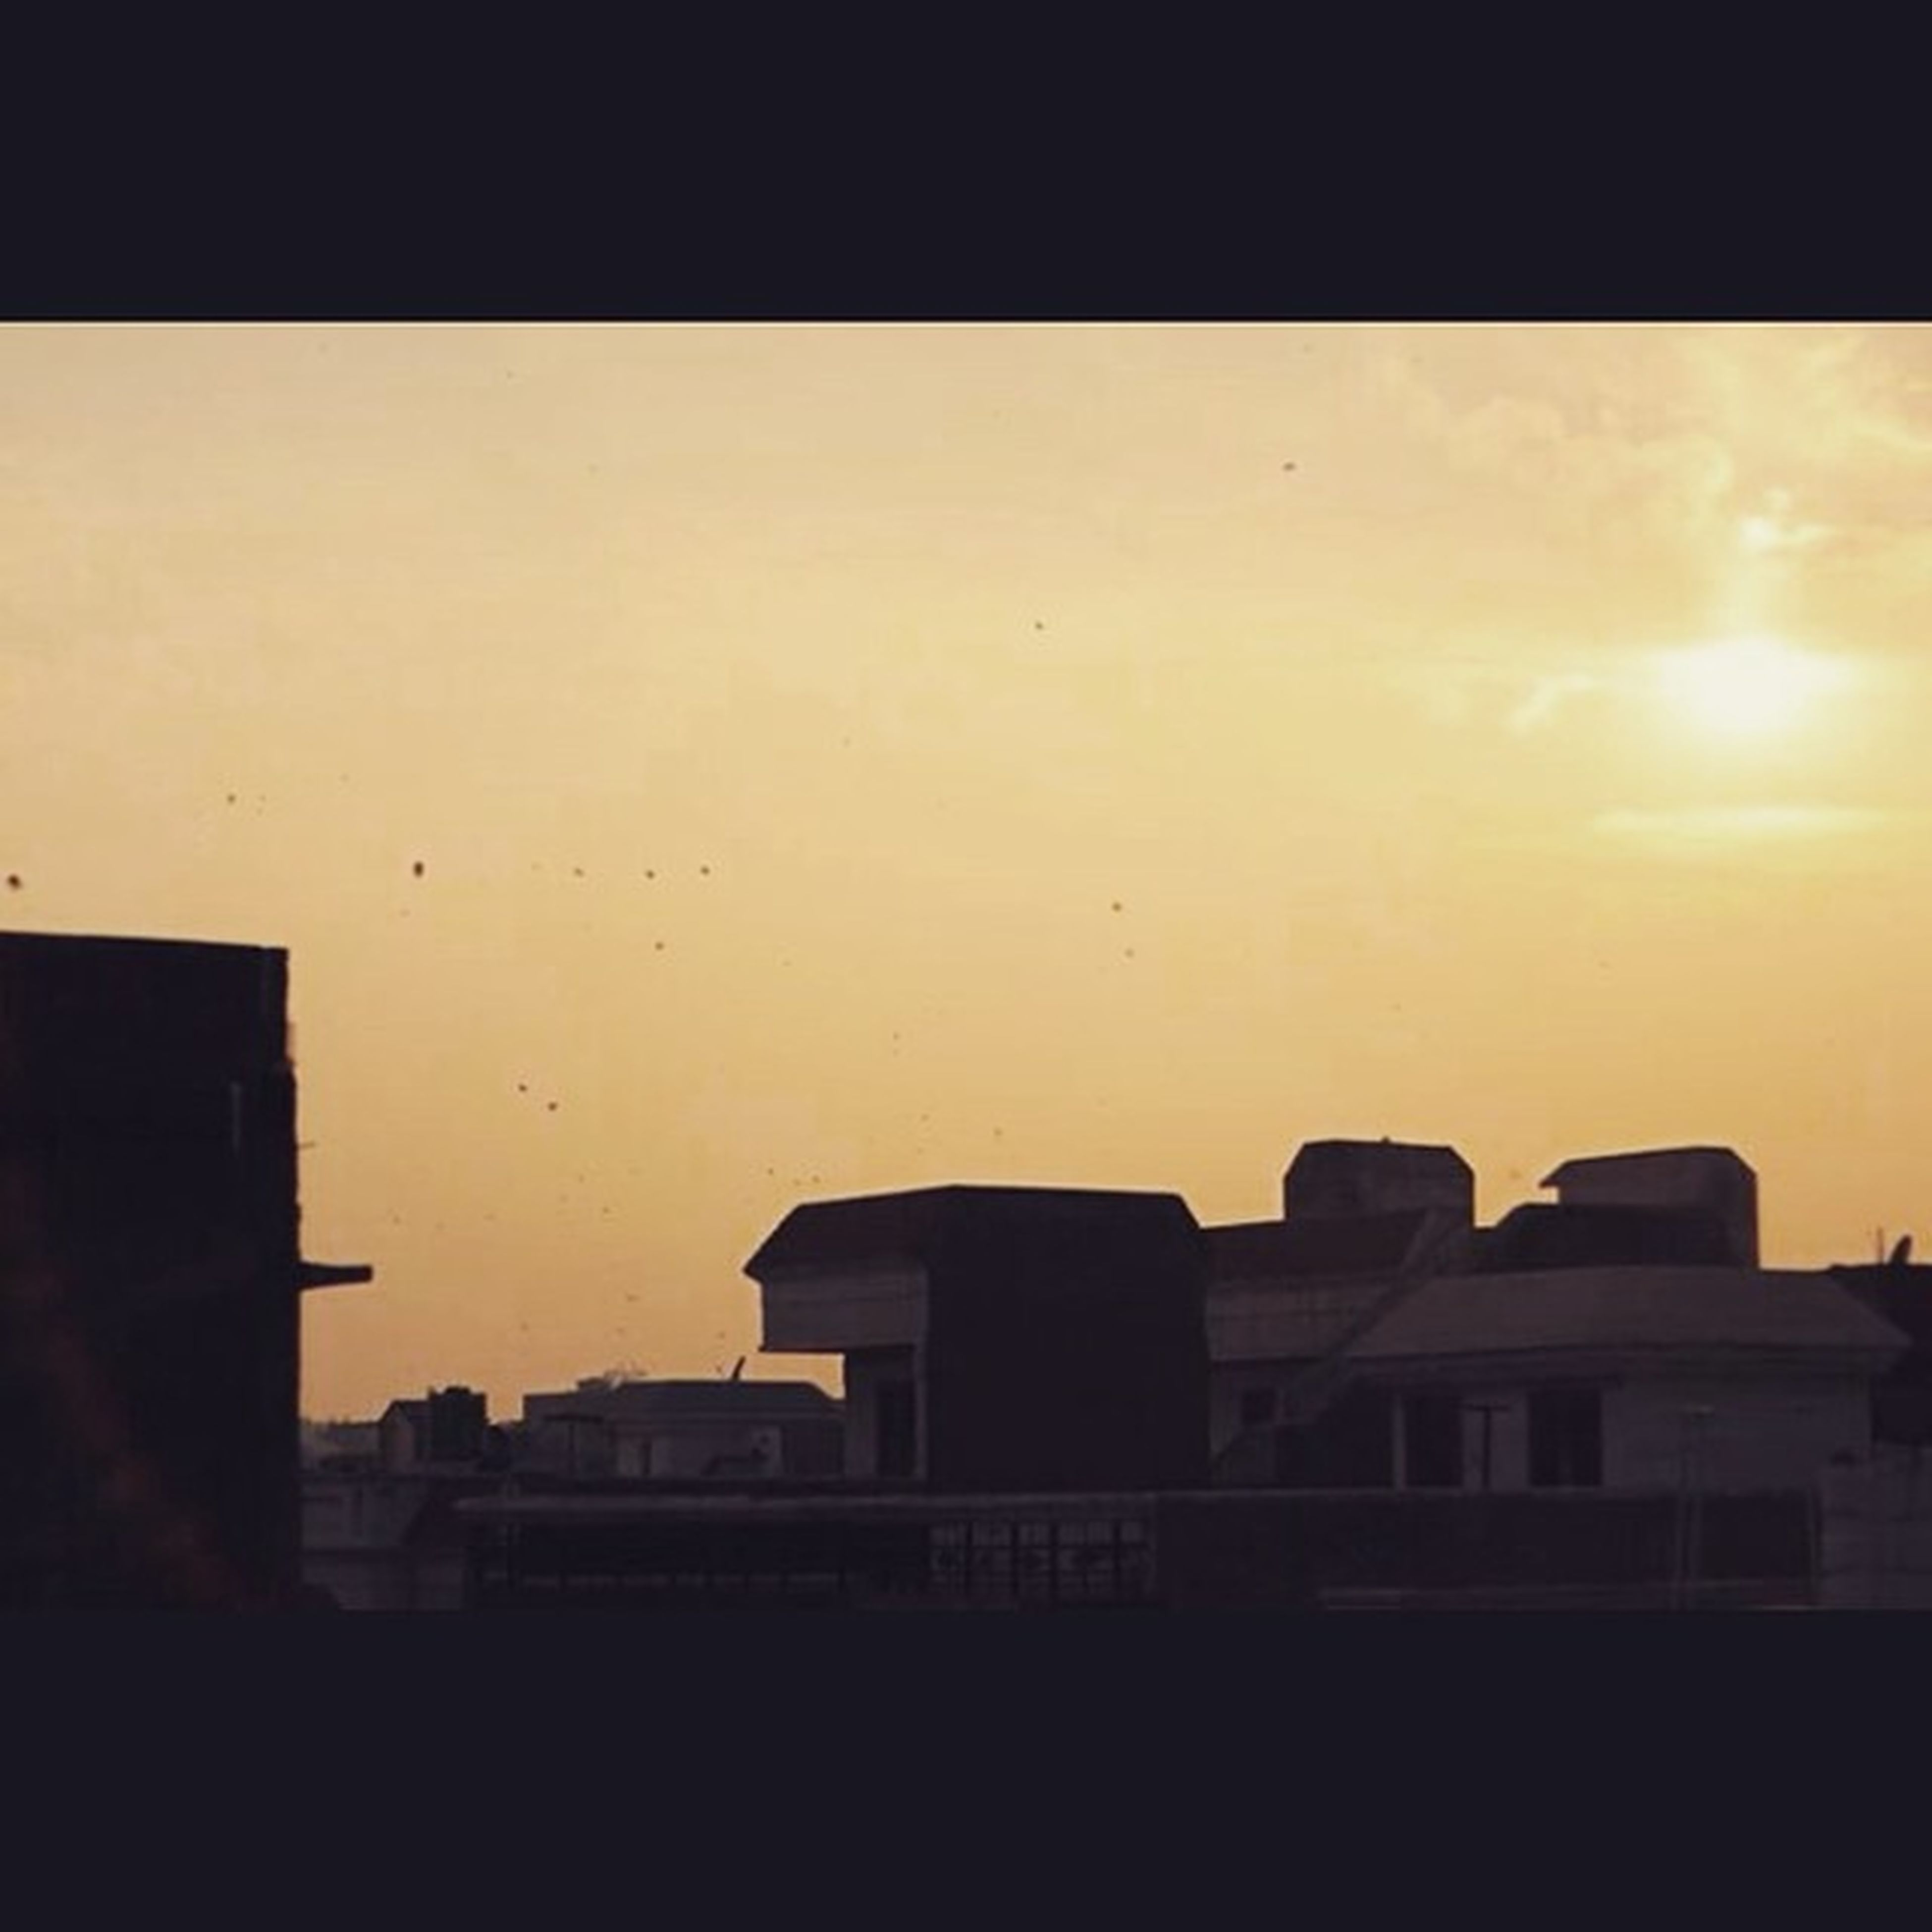 building exterior, architecture, built structure, sunset, transfer print, silhouette, auto post production filter, sky, residential structure, building, window, house, residential building, city, dusk, outdoors, low angle view, no people, dark, sunlight